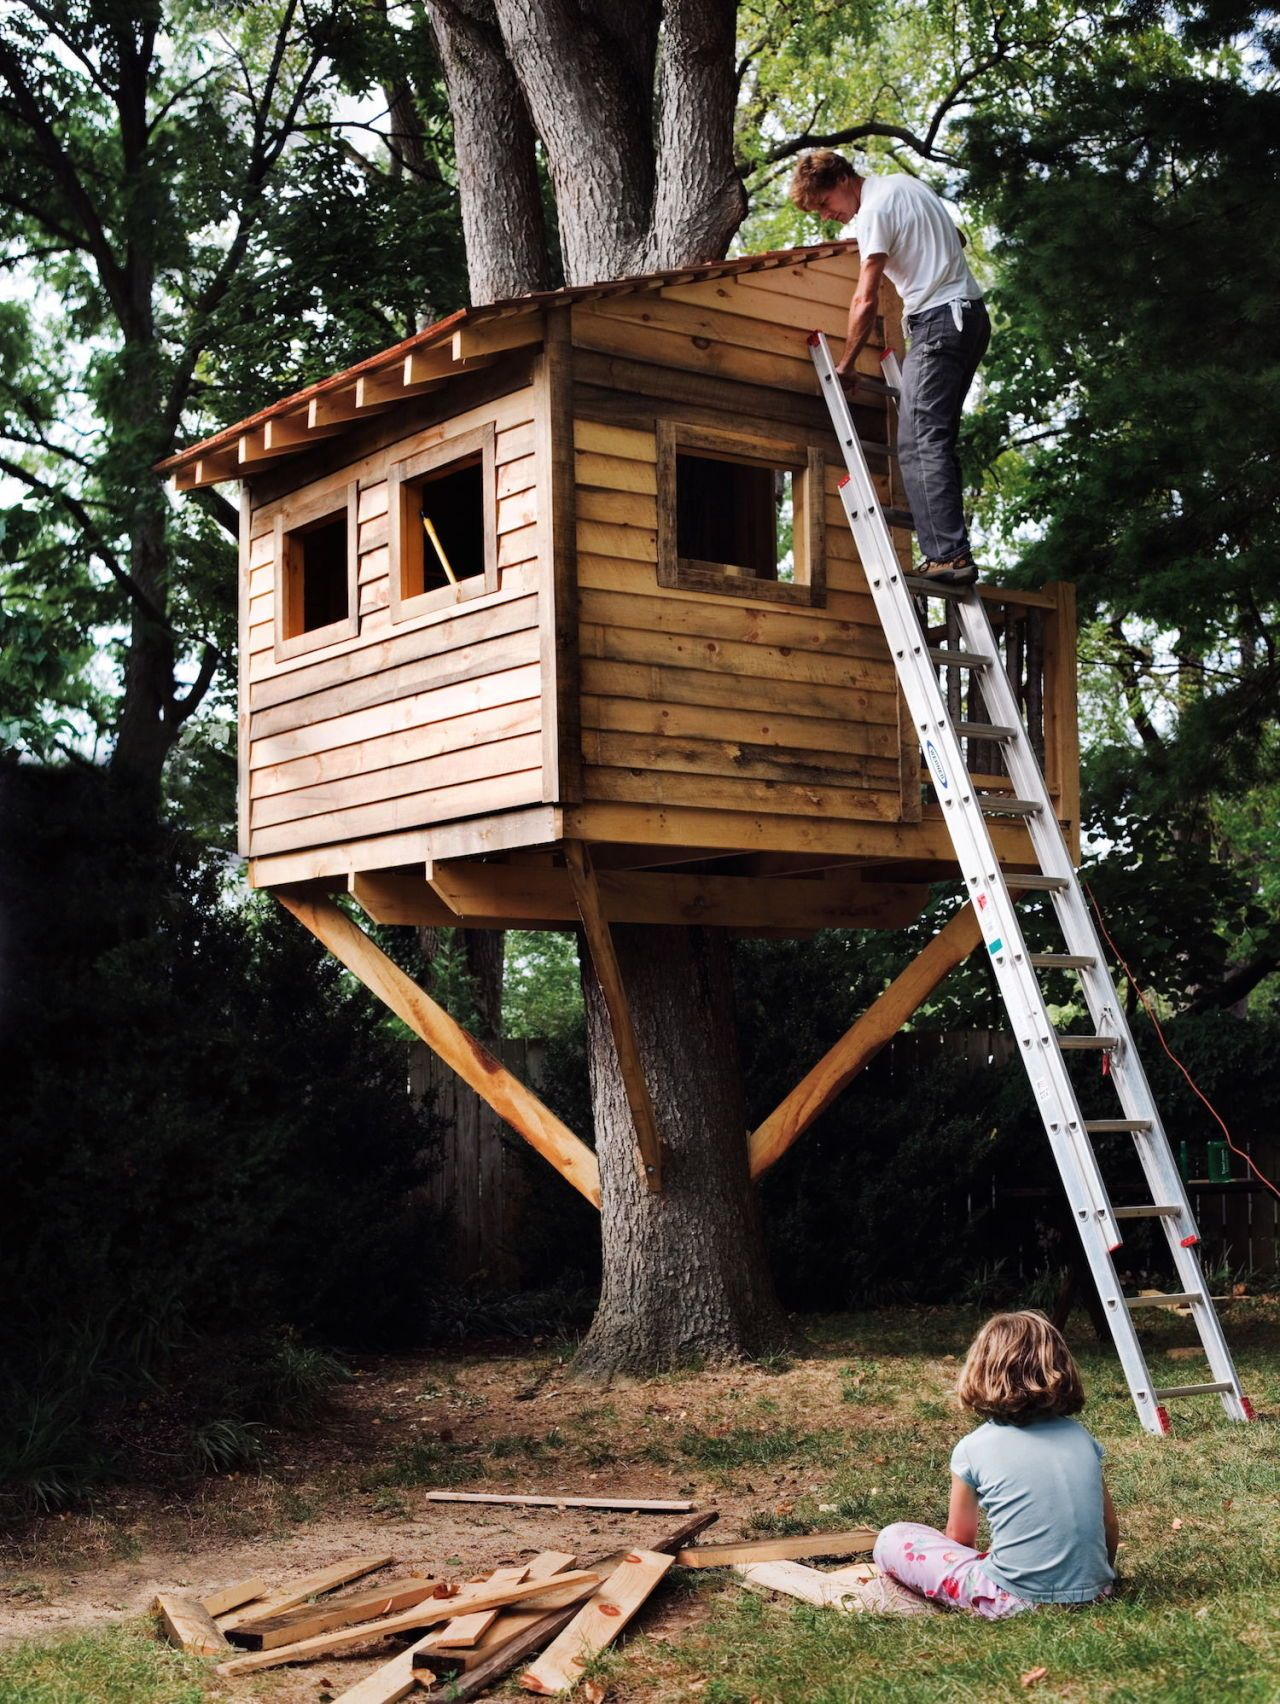 How To Build A Treehouse In The Backyard Tree House Diy Tree